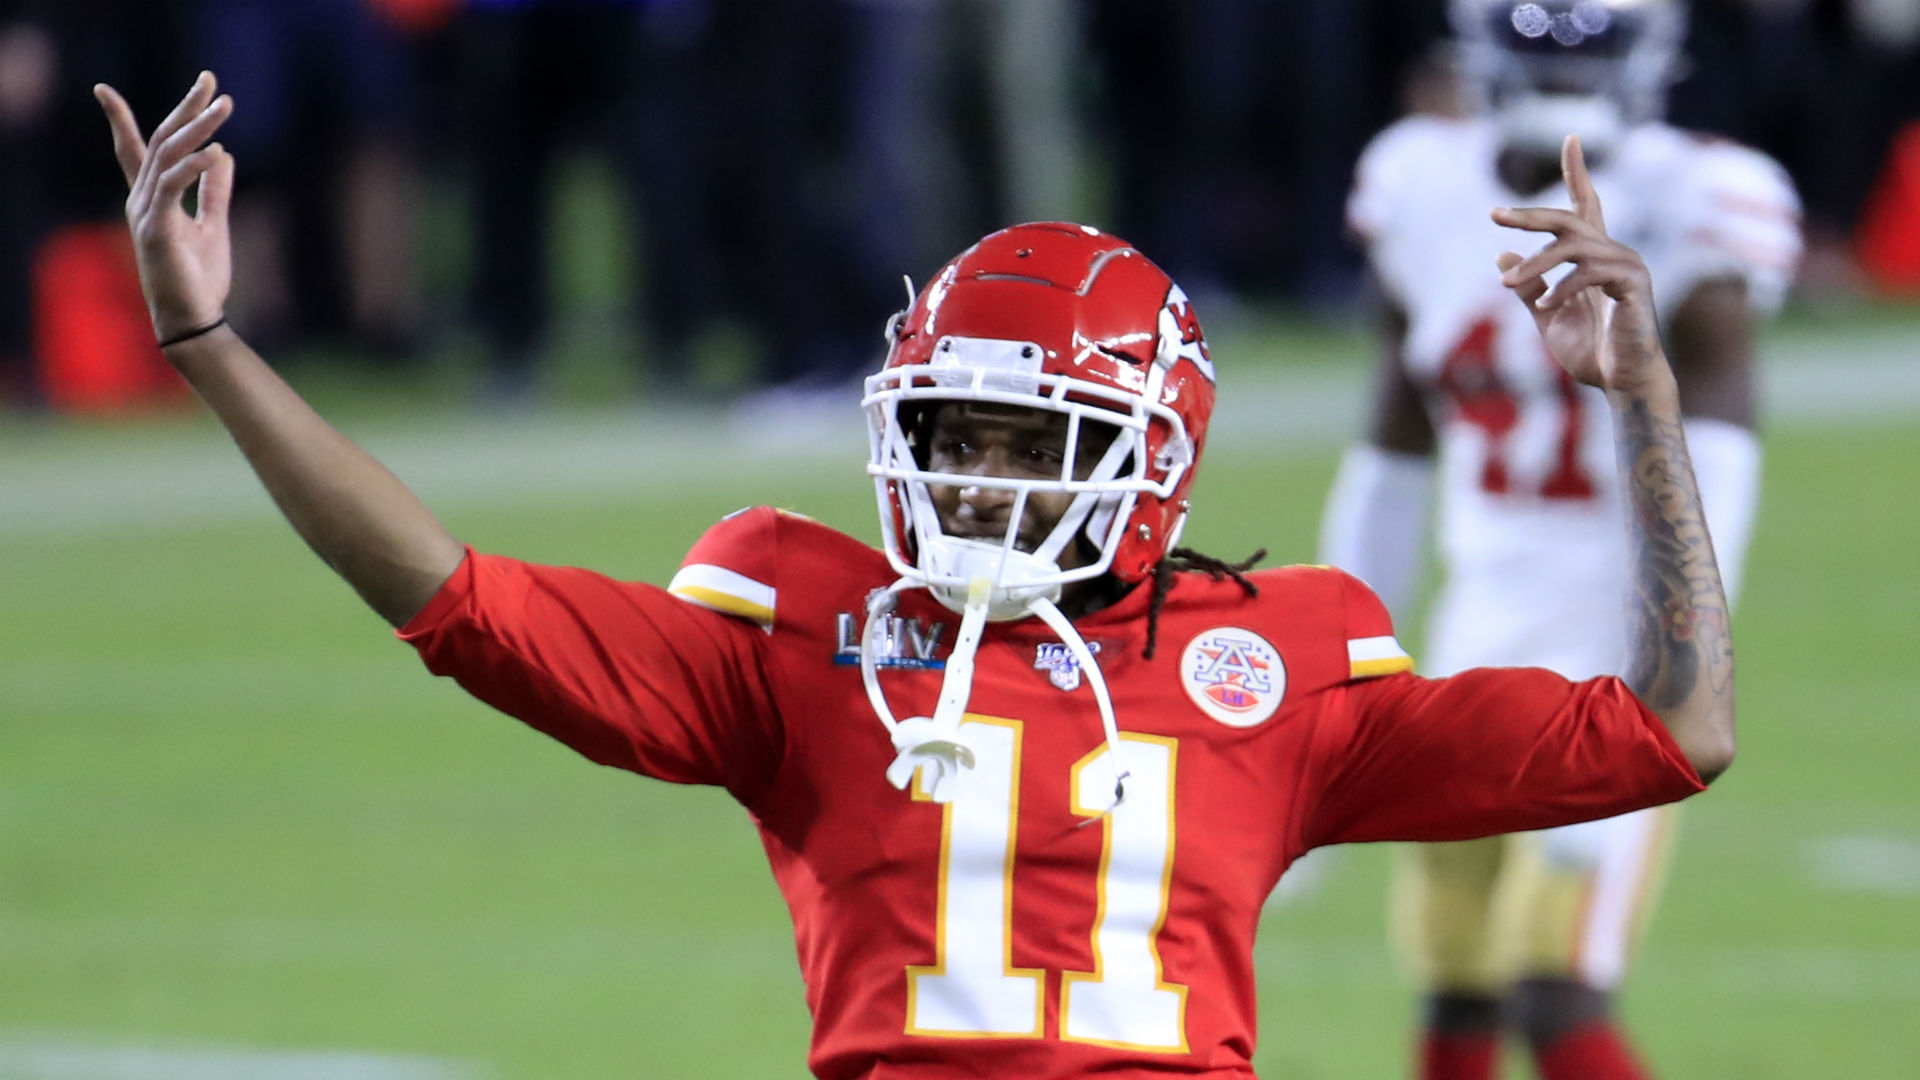 The Kansas City Chiefs have reportedly boosted their receiver ranks by re-signing Demarcus Robinson from free agency.